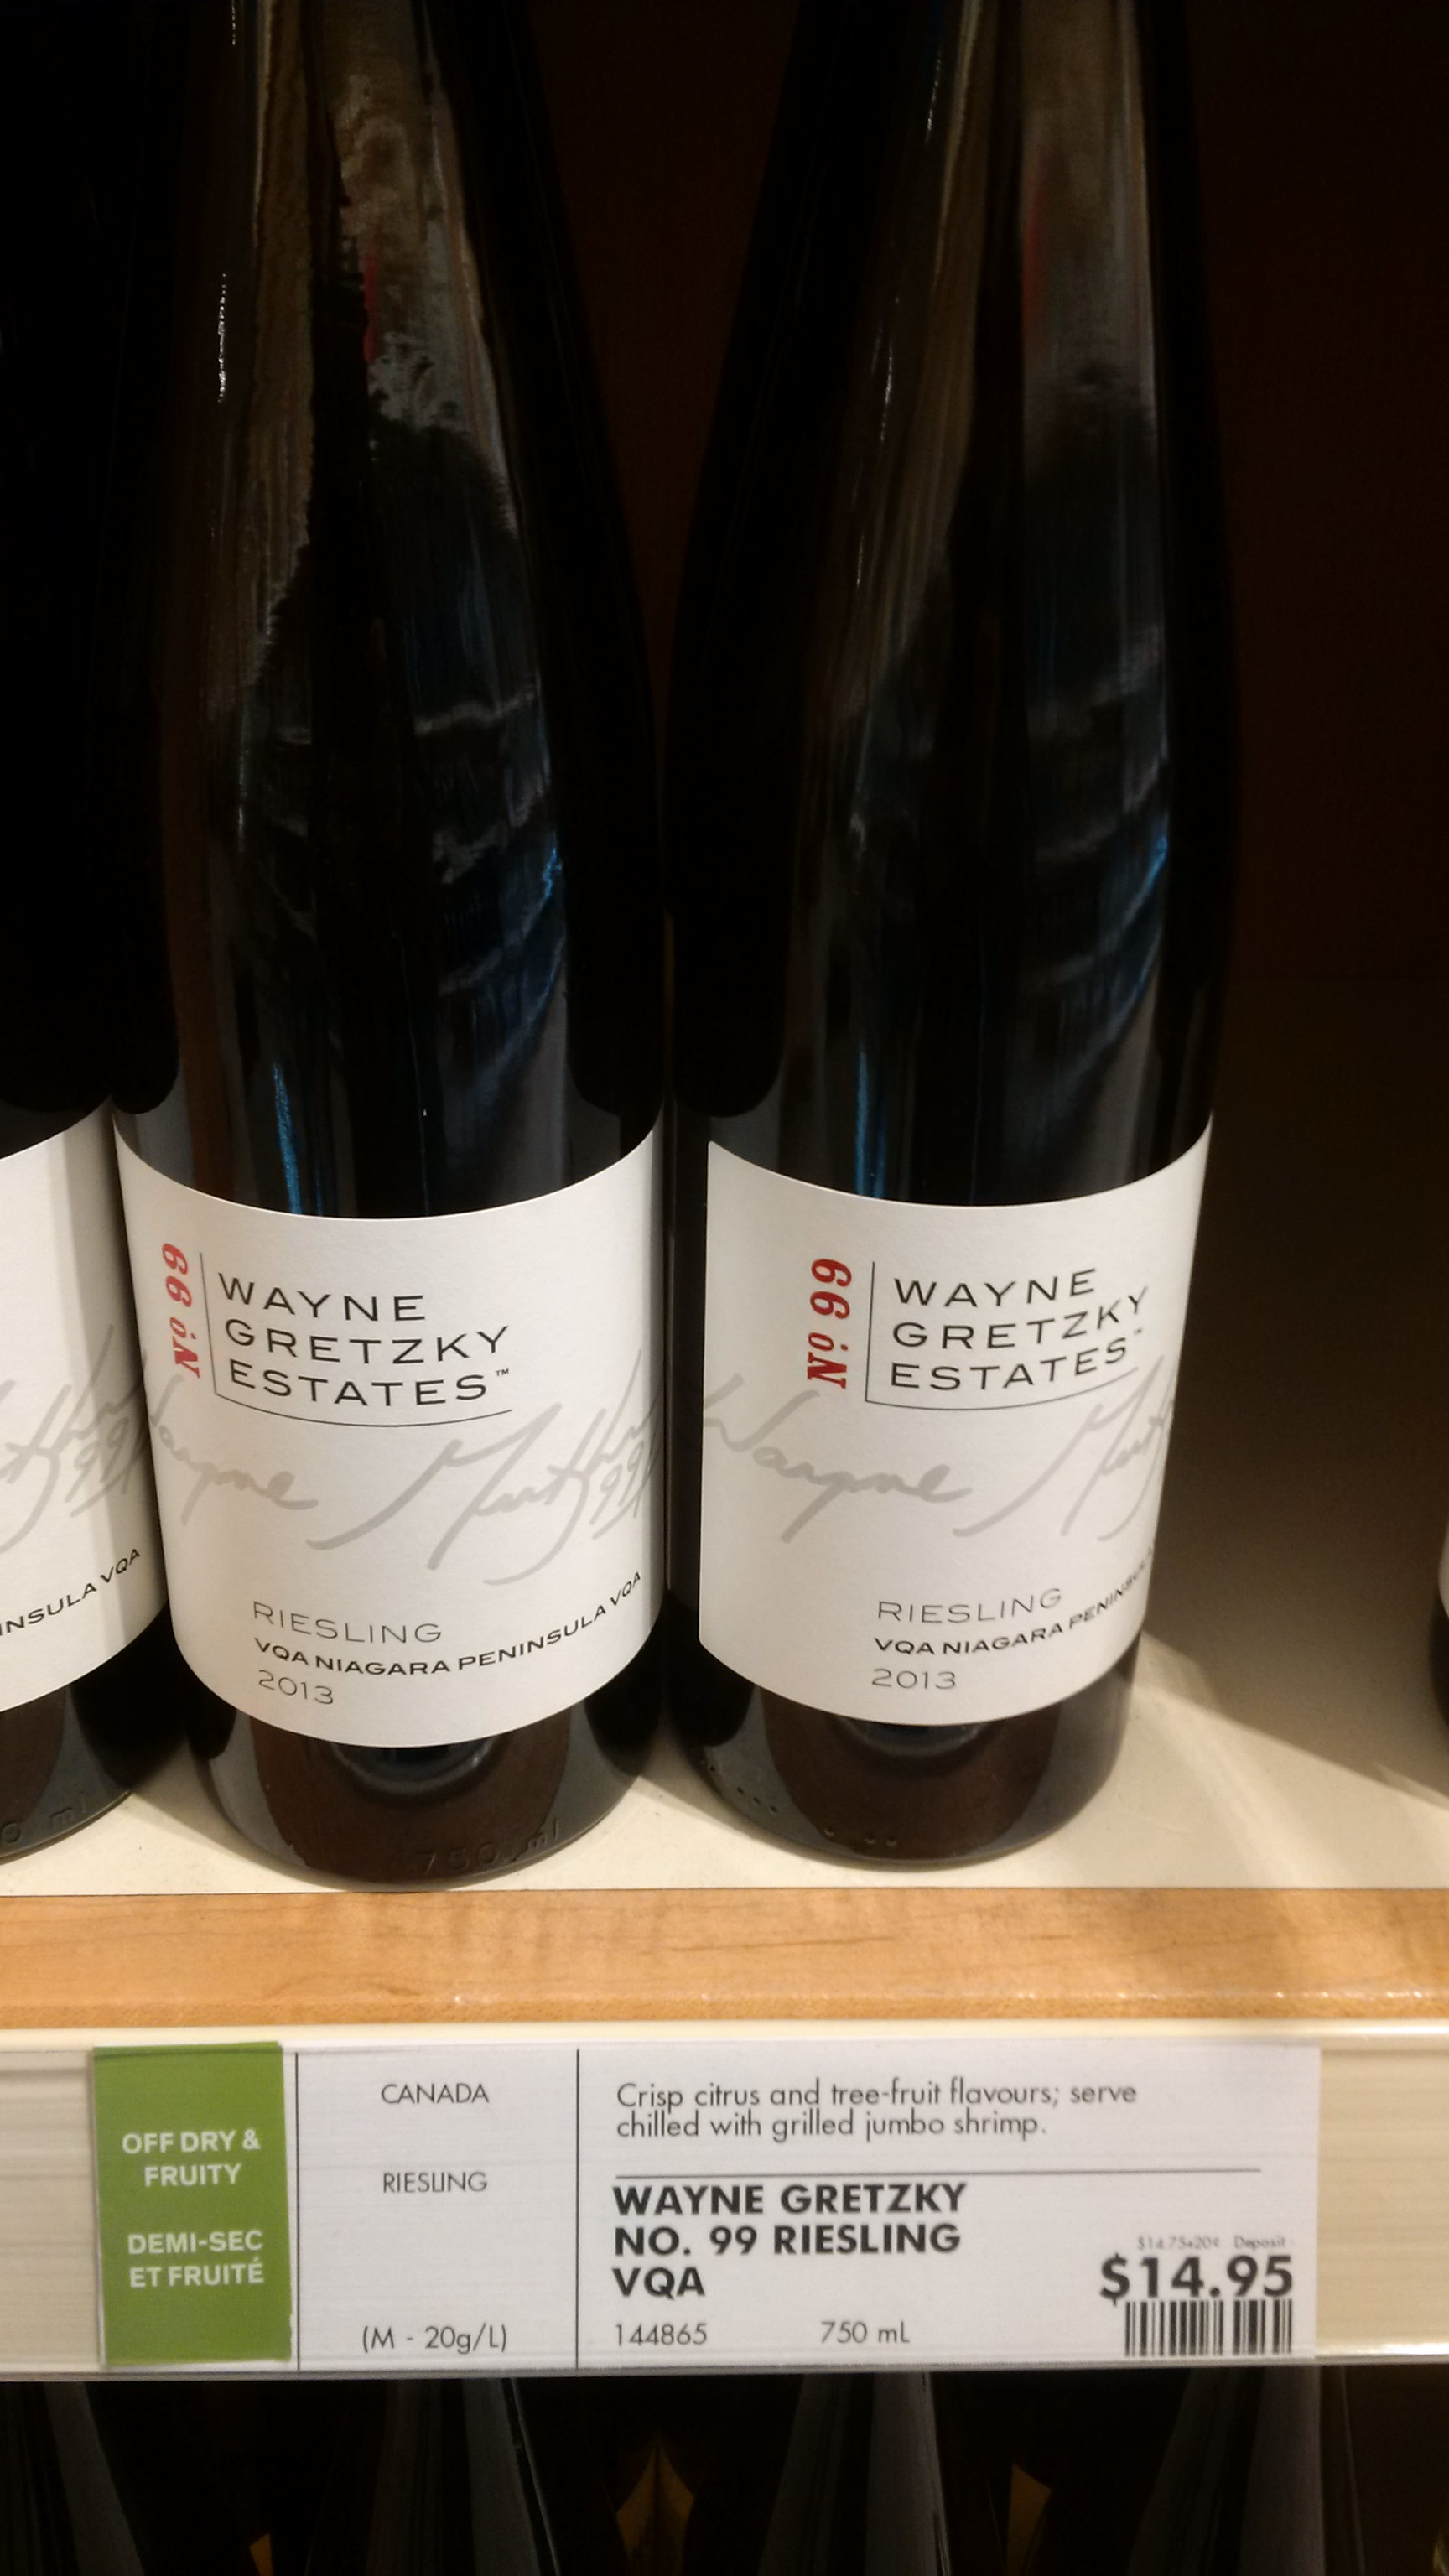 What's up with Wayne Gretzky and beverages?